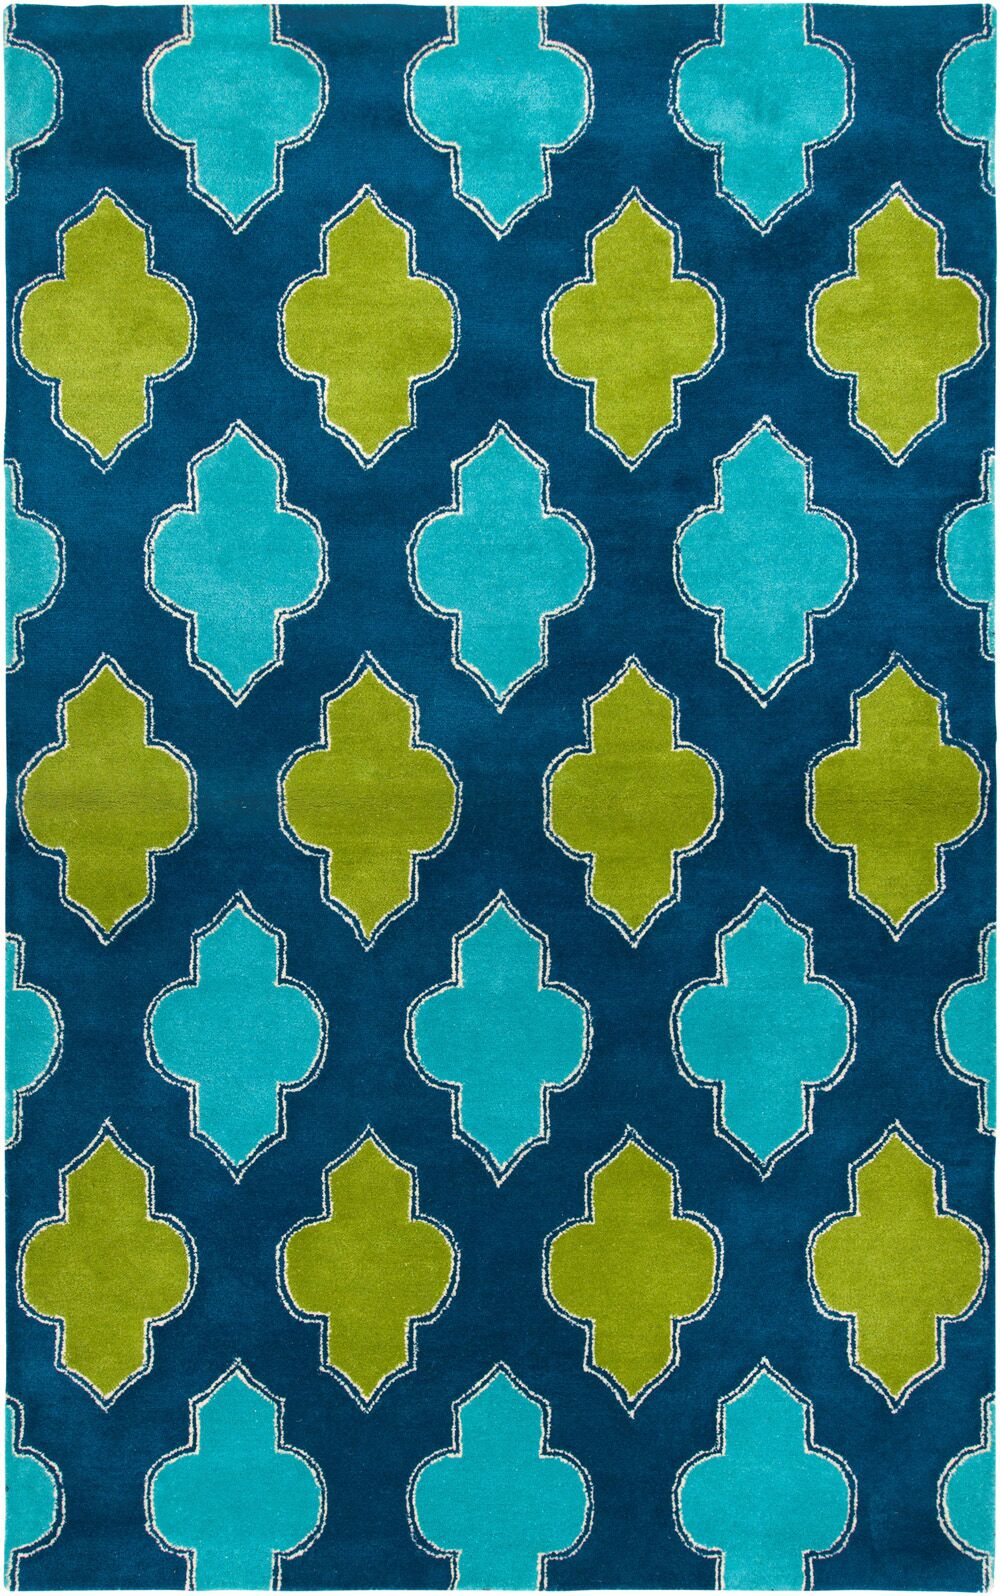 Ivory Hand-Tufted Blue/Green Area Rug Rug Size: Rectangle 5' x 8'